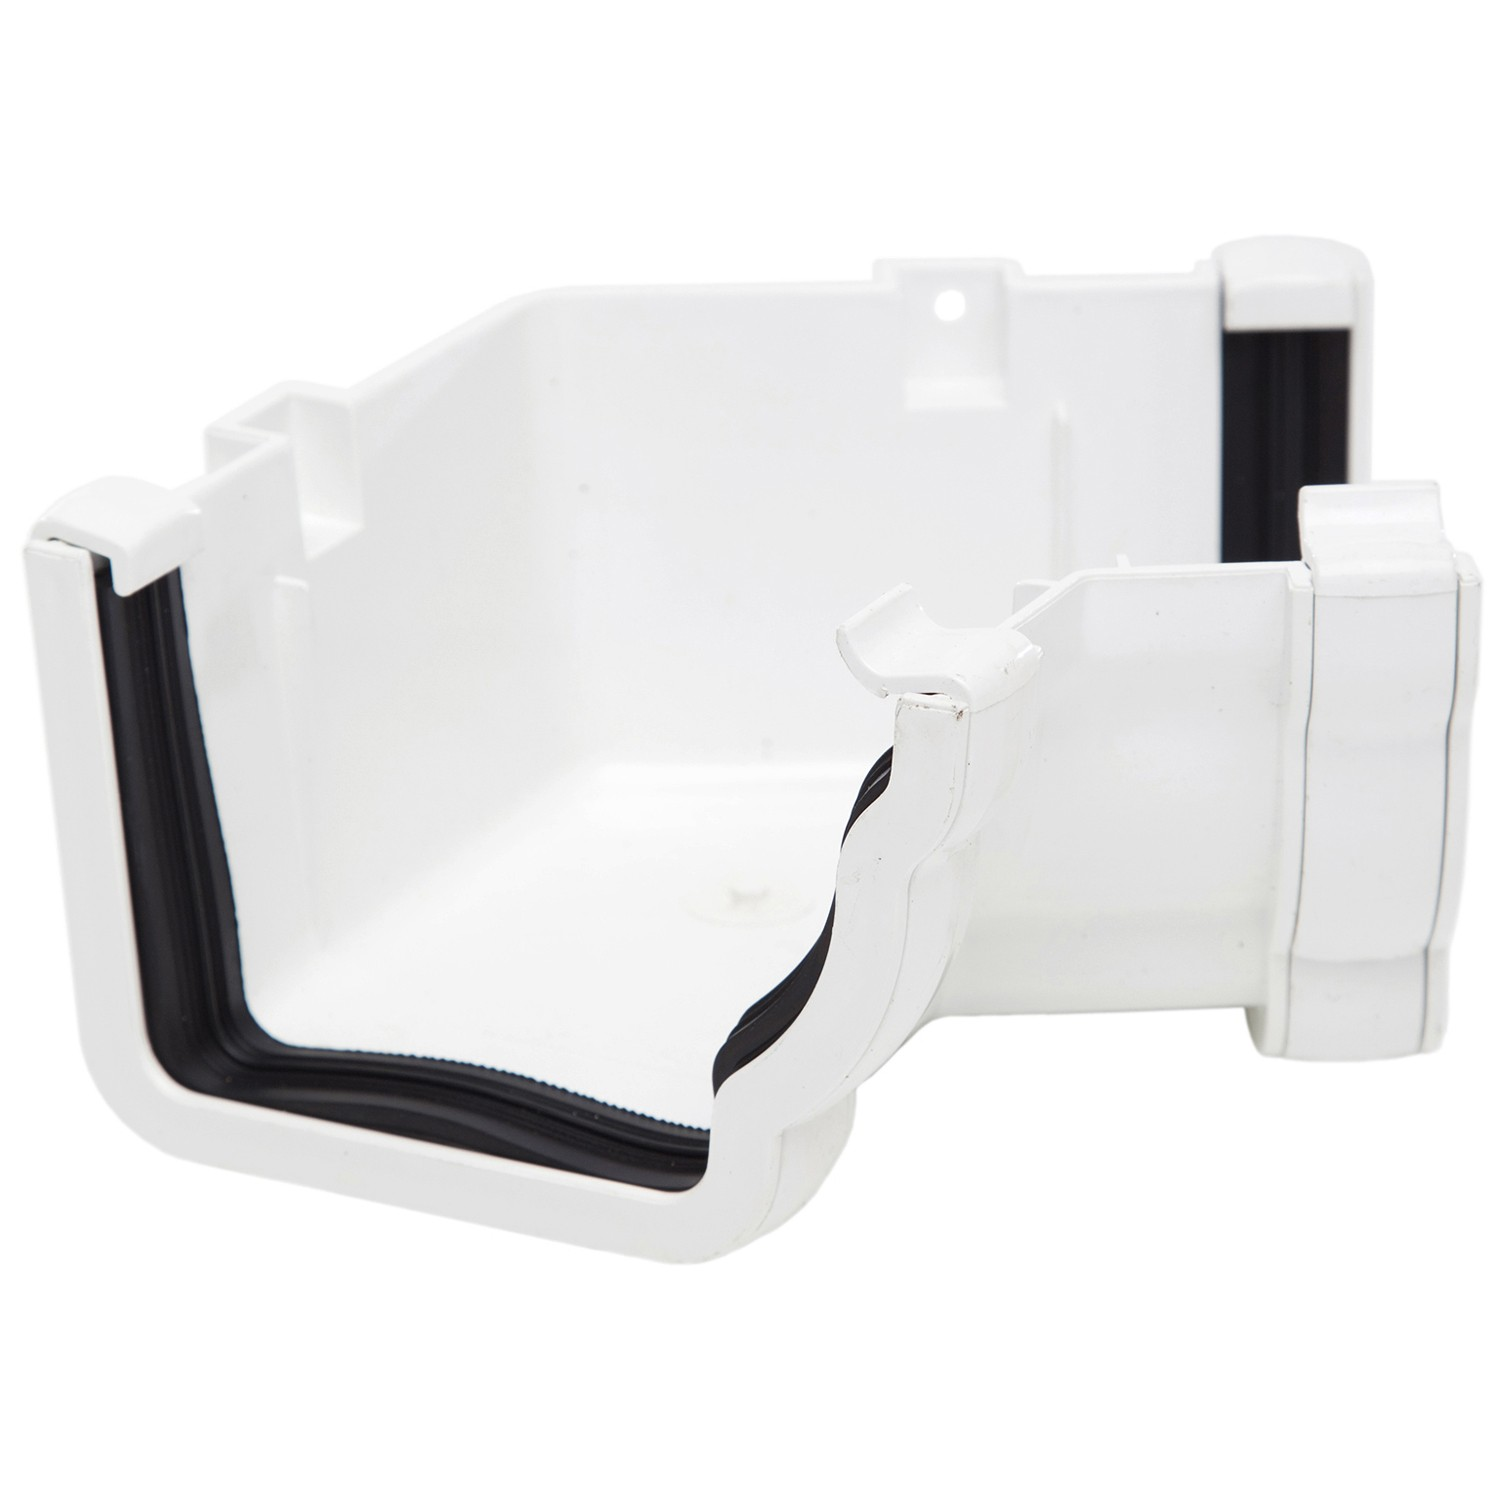 Polypipe 117mm Sovereign High Capacity Gutter 120 Degree Angle (Internal, Fabricated) - White